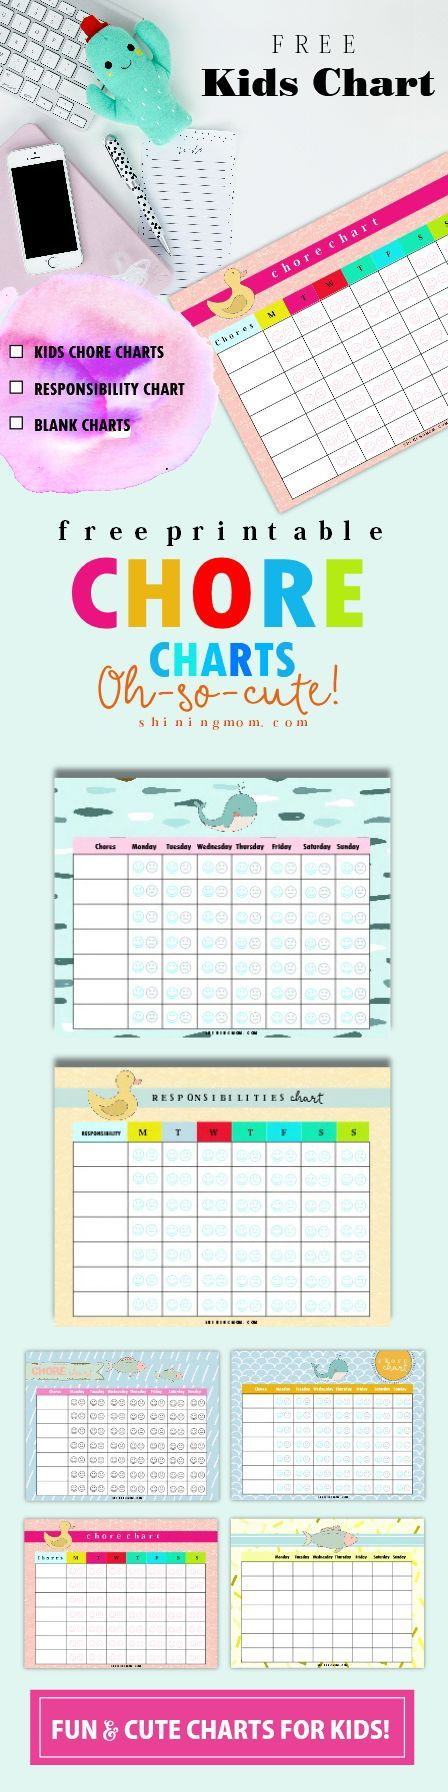 Best Free Printable Chore Charts Images On   Free